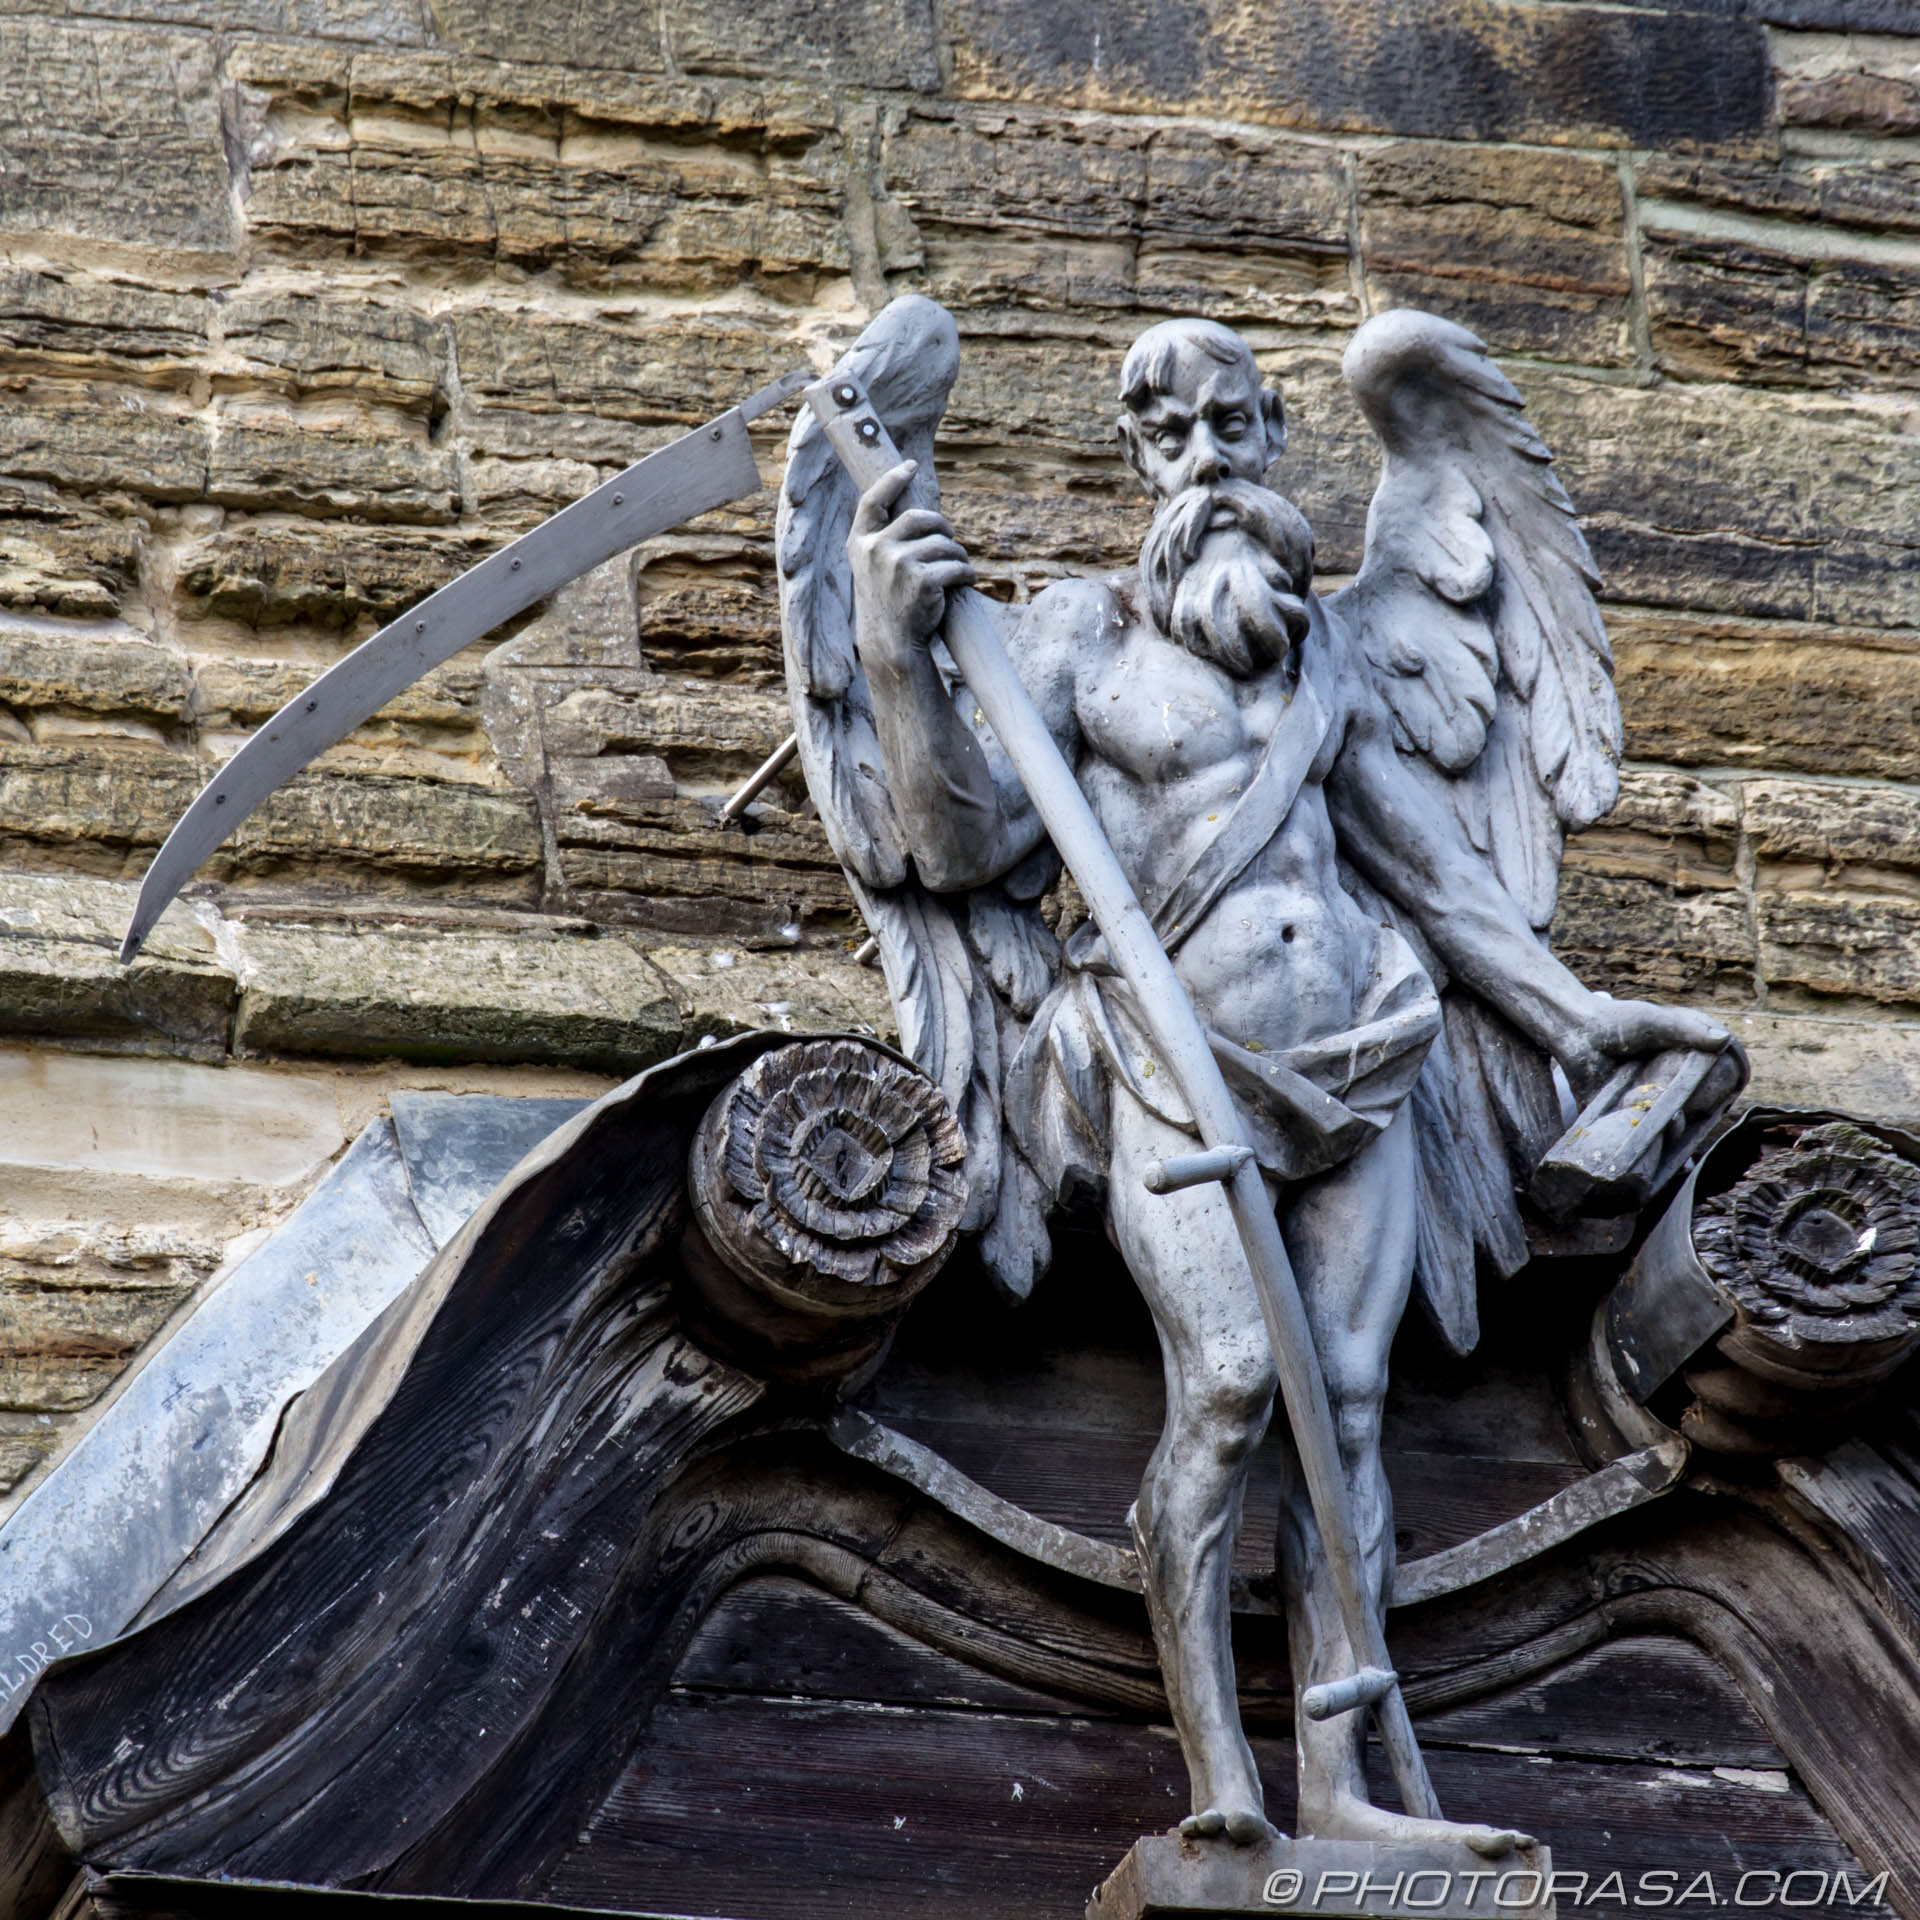 http://photorasa.com/st-dunstans-church-cranbrook/bearded-angel-of-death-with-scythe/